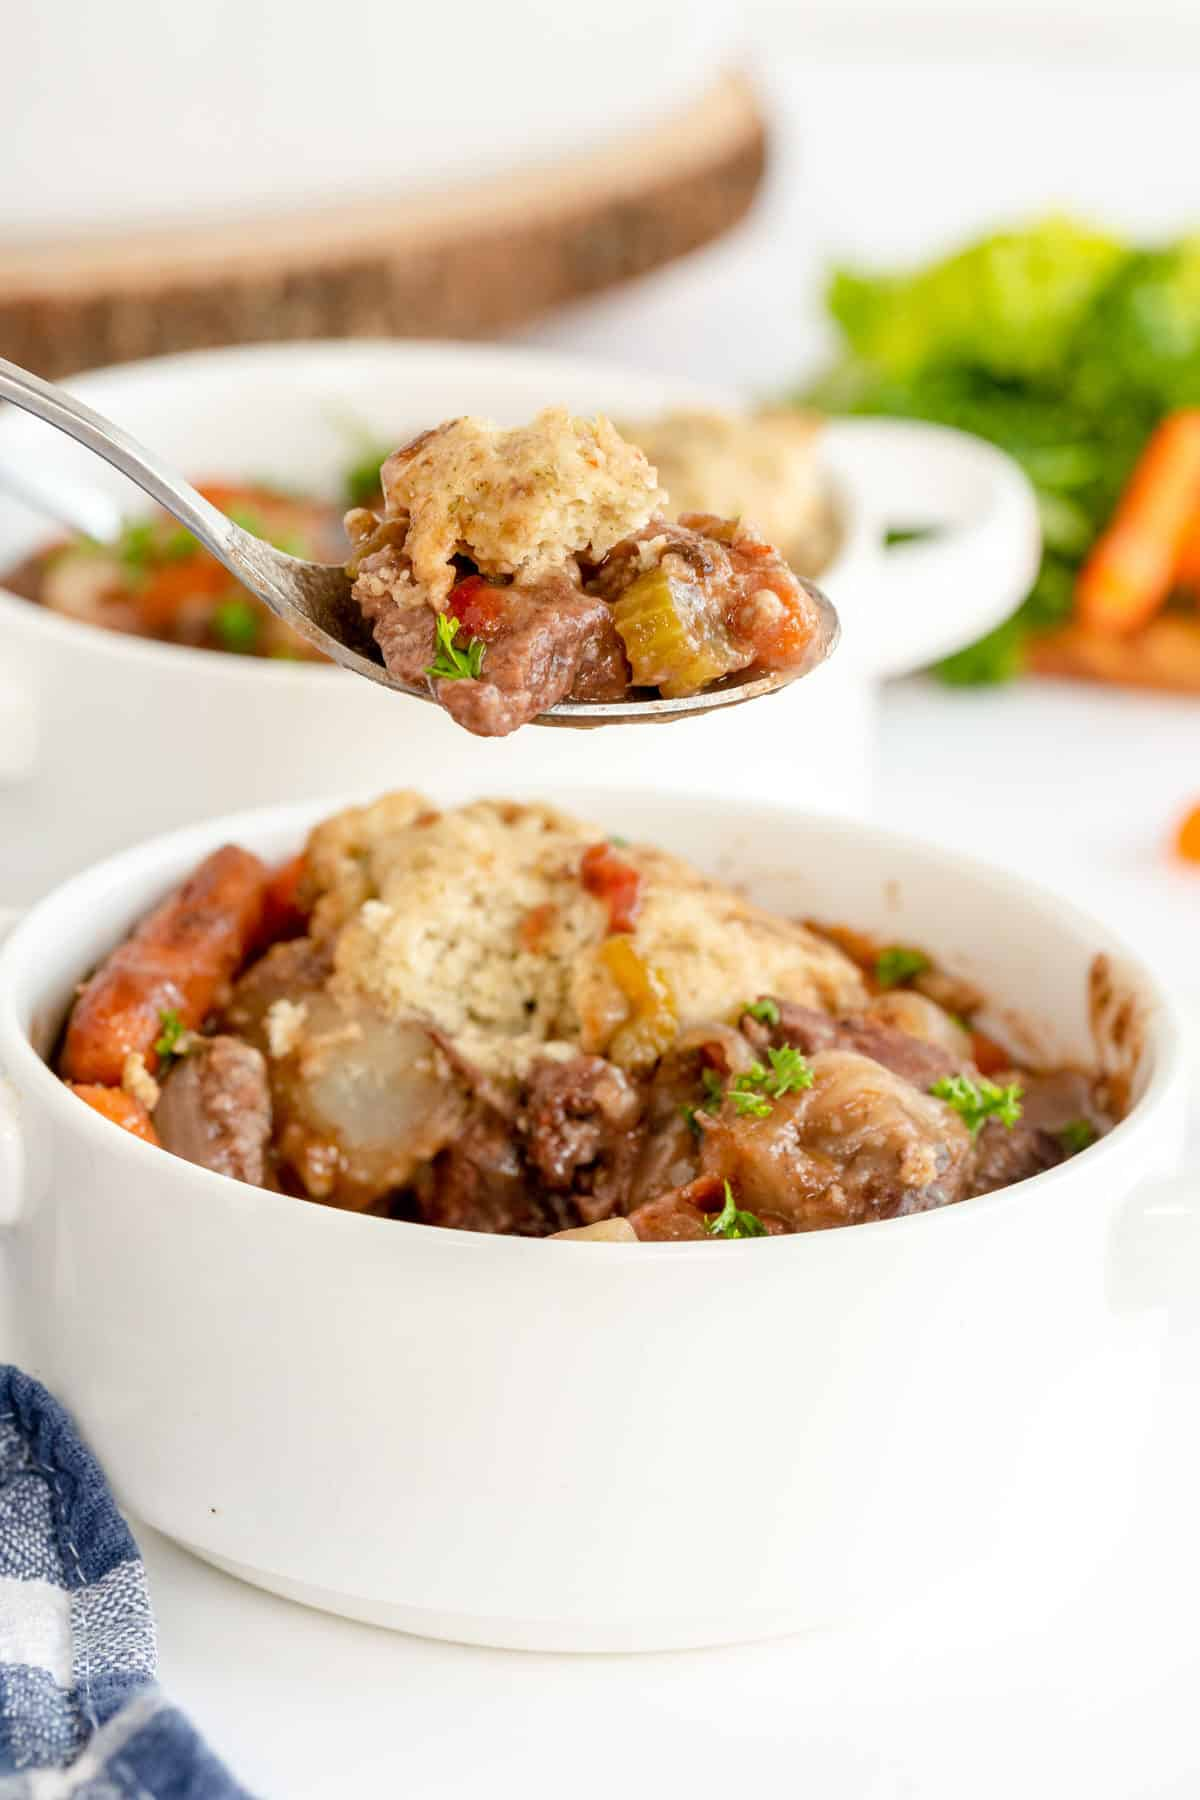 beef stew with dumplings in a white bowl on a spoon